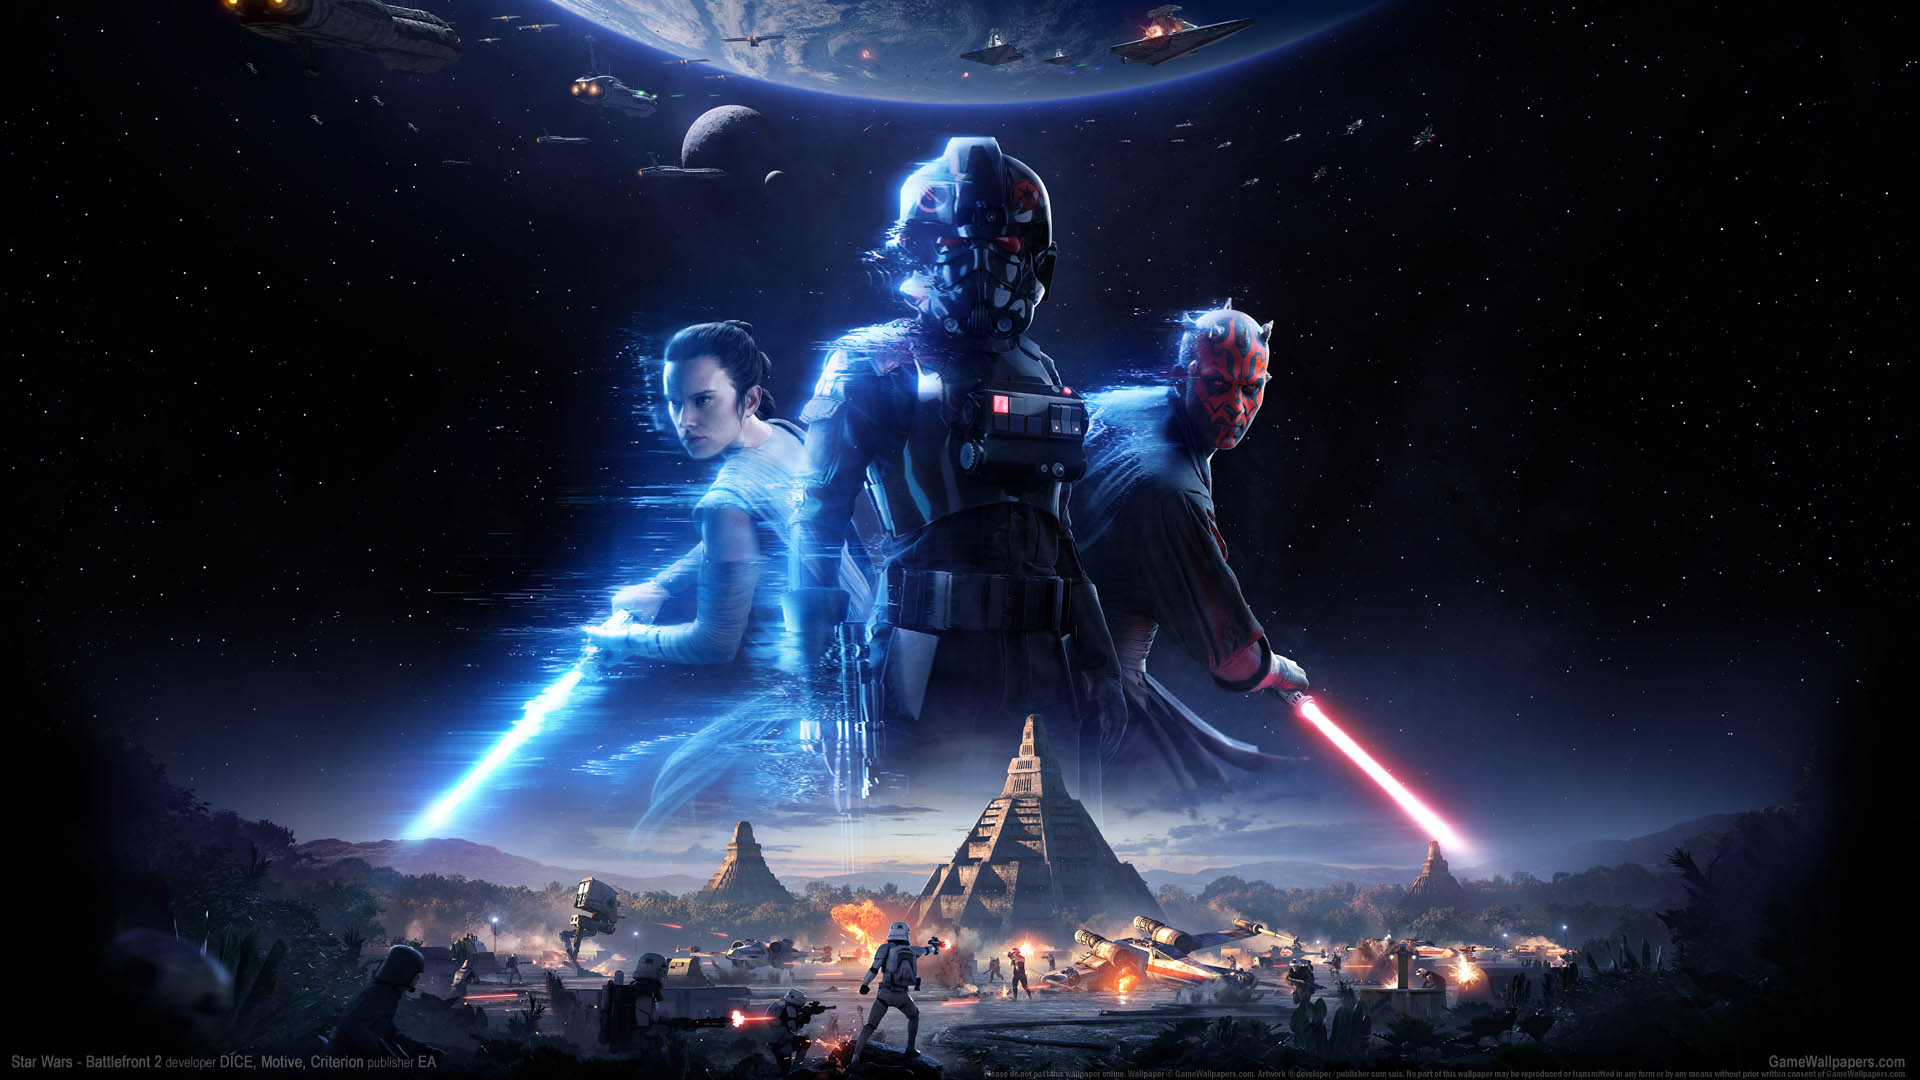 Star Wars - Battlefront 2 wallpaper 01 1920x1080